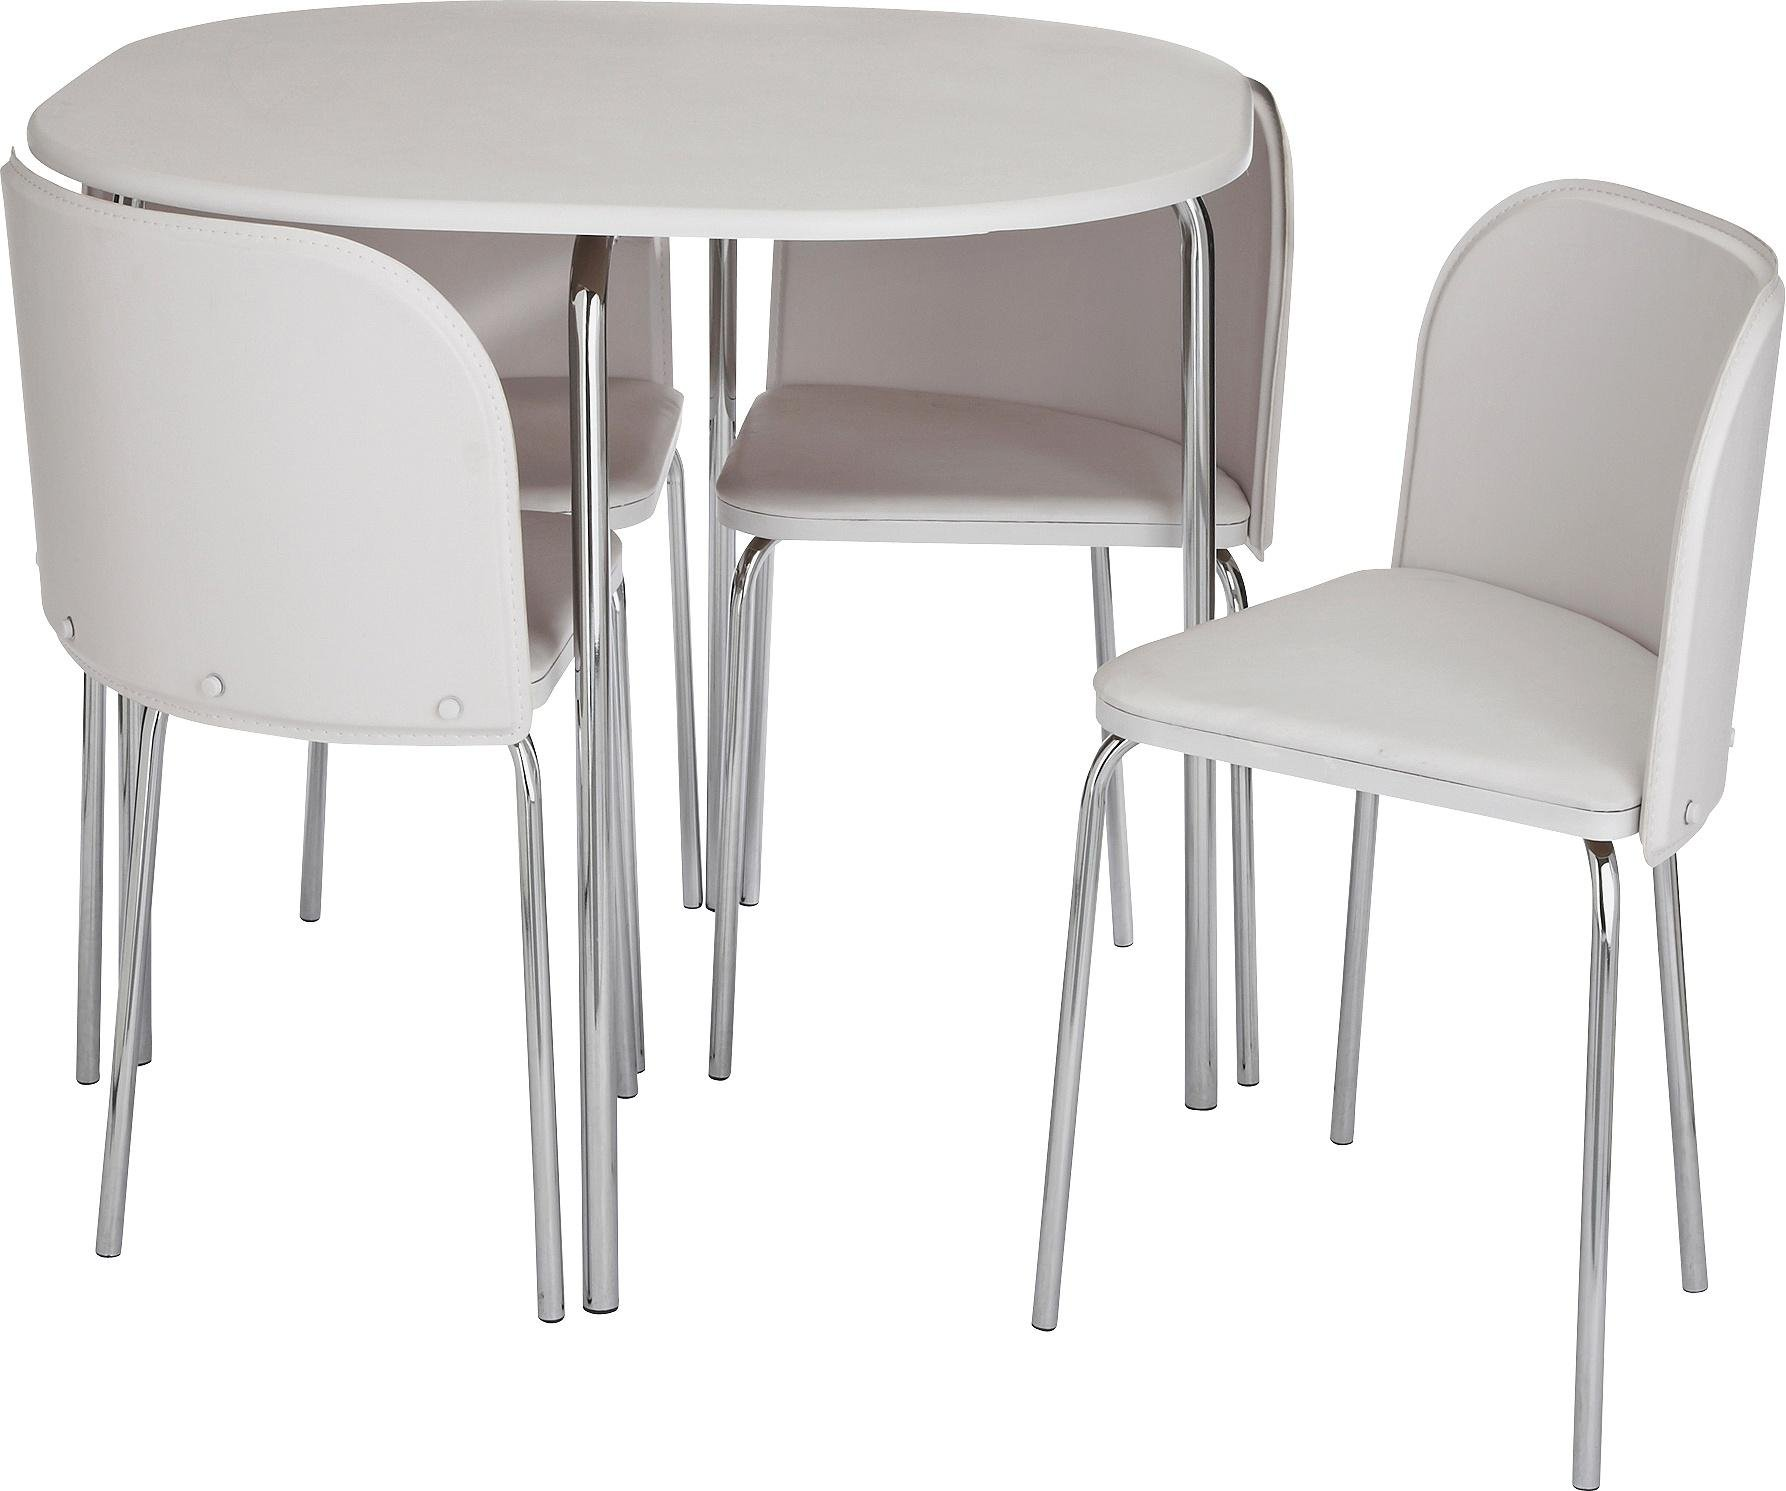 dining tables sets argos. click to zoom dining tables sets argos r